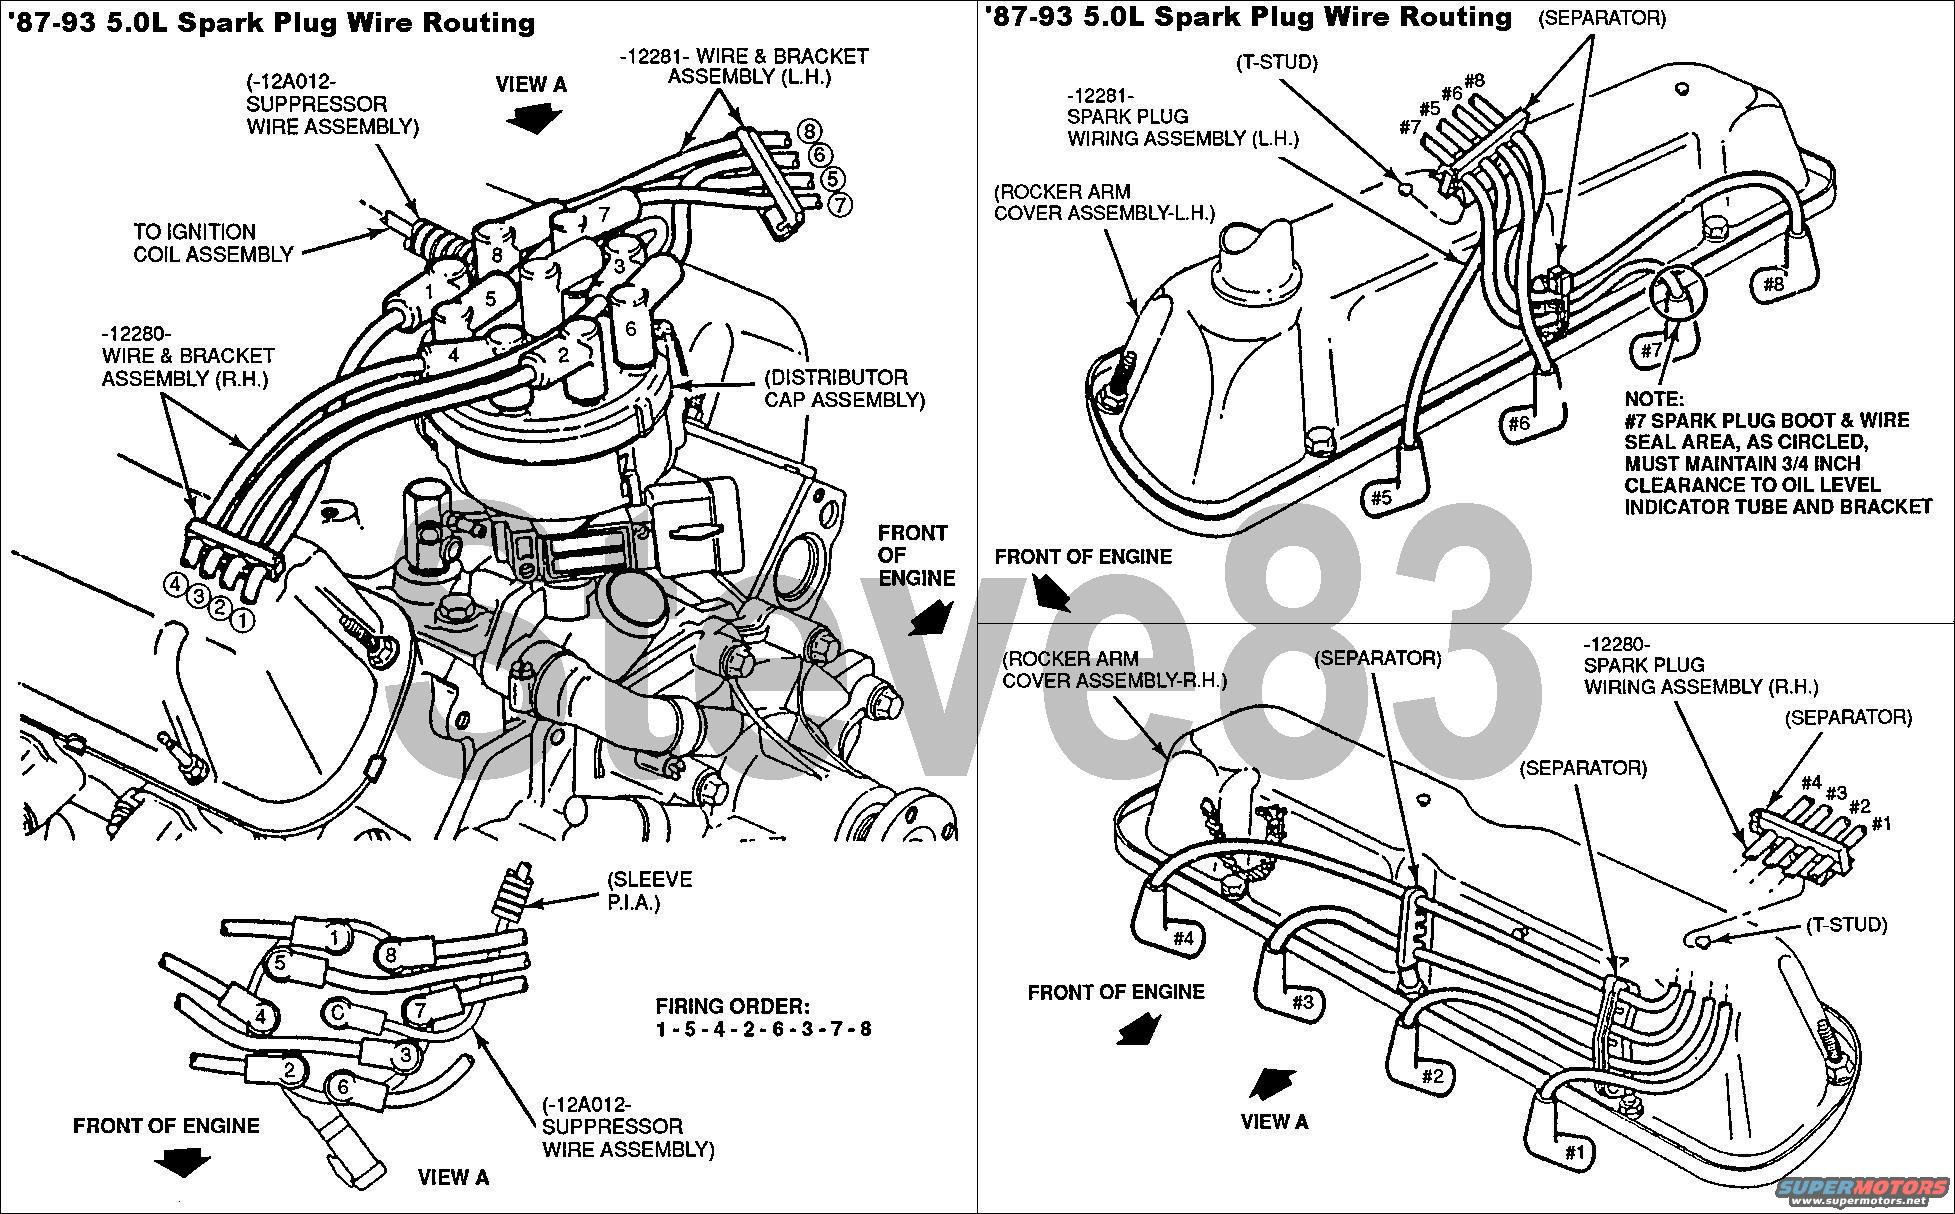 89 dodge dakota spark plug wiring diagram get free image spark plug wire  diagram ford f150 v6 spark plug wire diagram dodge ram 1500